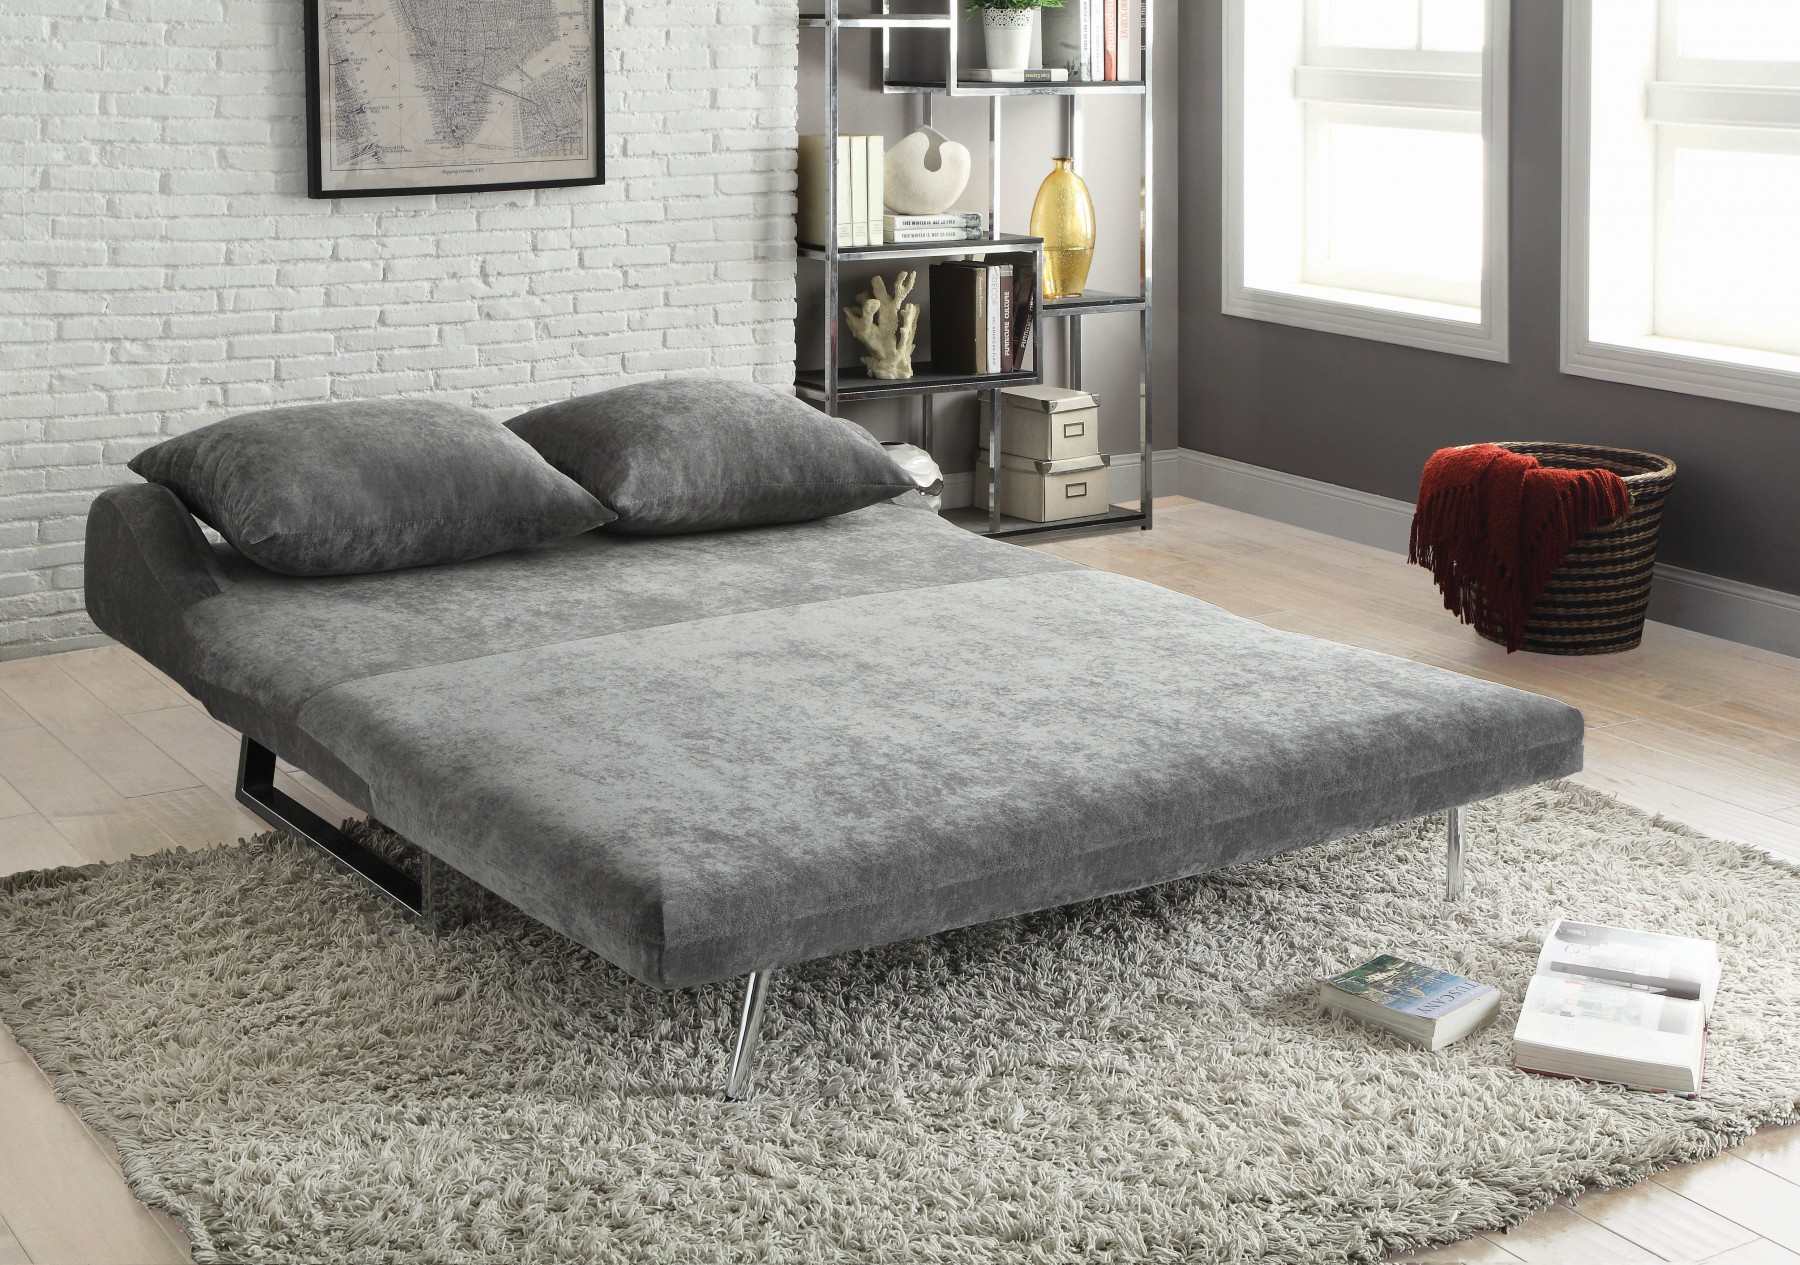 ... Back Design Adds A Touch Of Glamour To This Sofa And Bed Combo. The  Three Position Sofa Converts In A Snap From Standard Sofa To Sofa With Chaise  Lounge ...